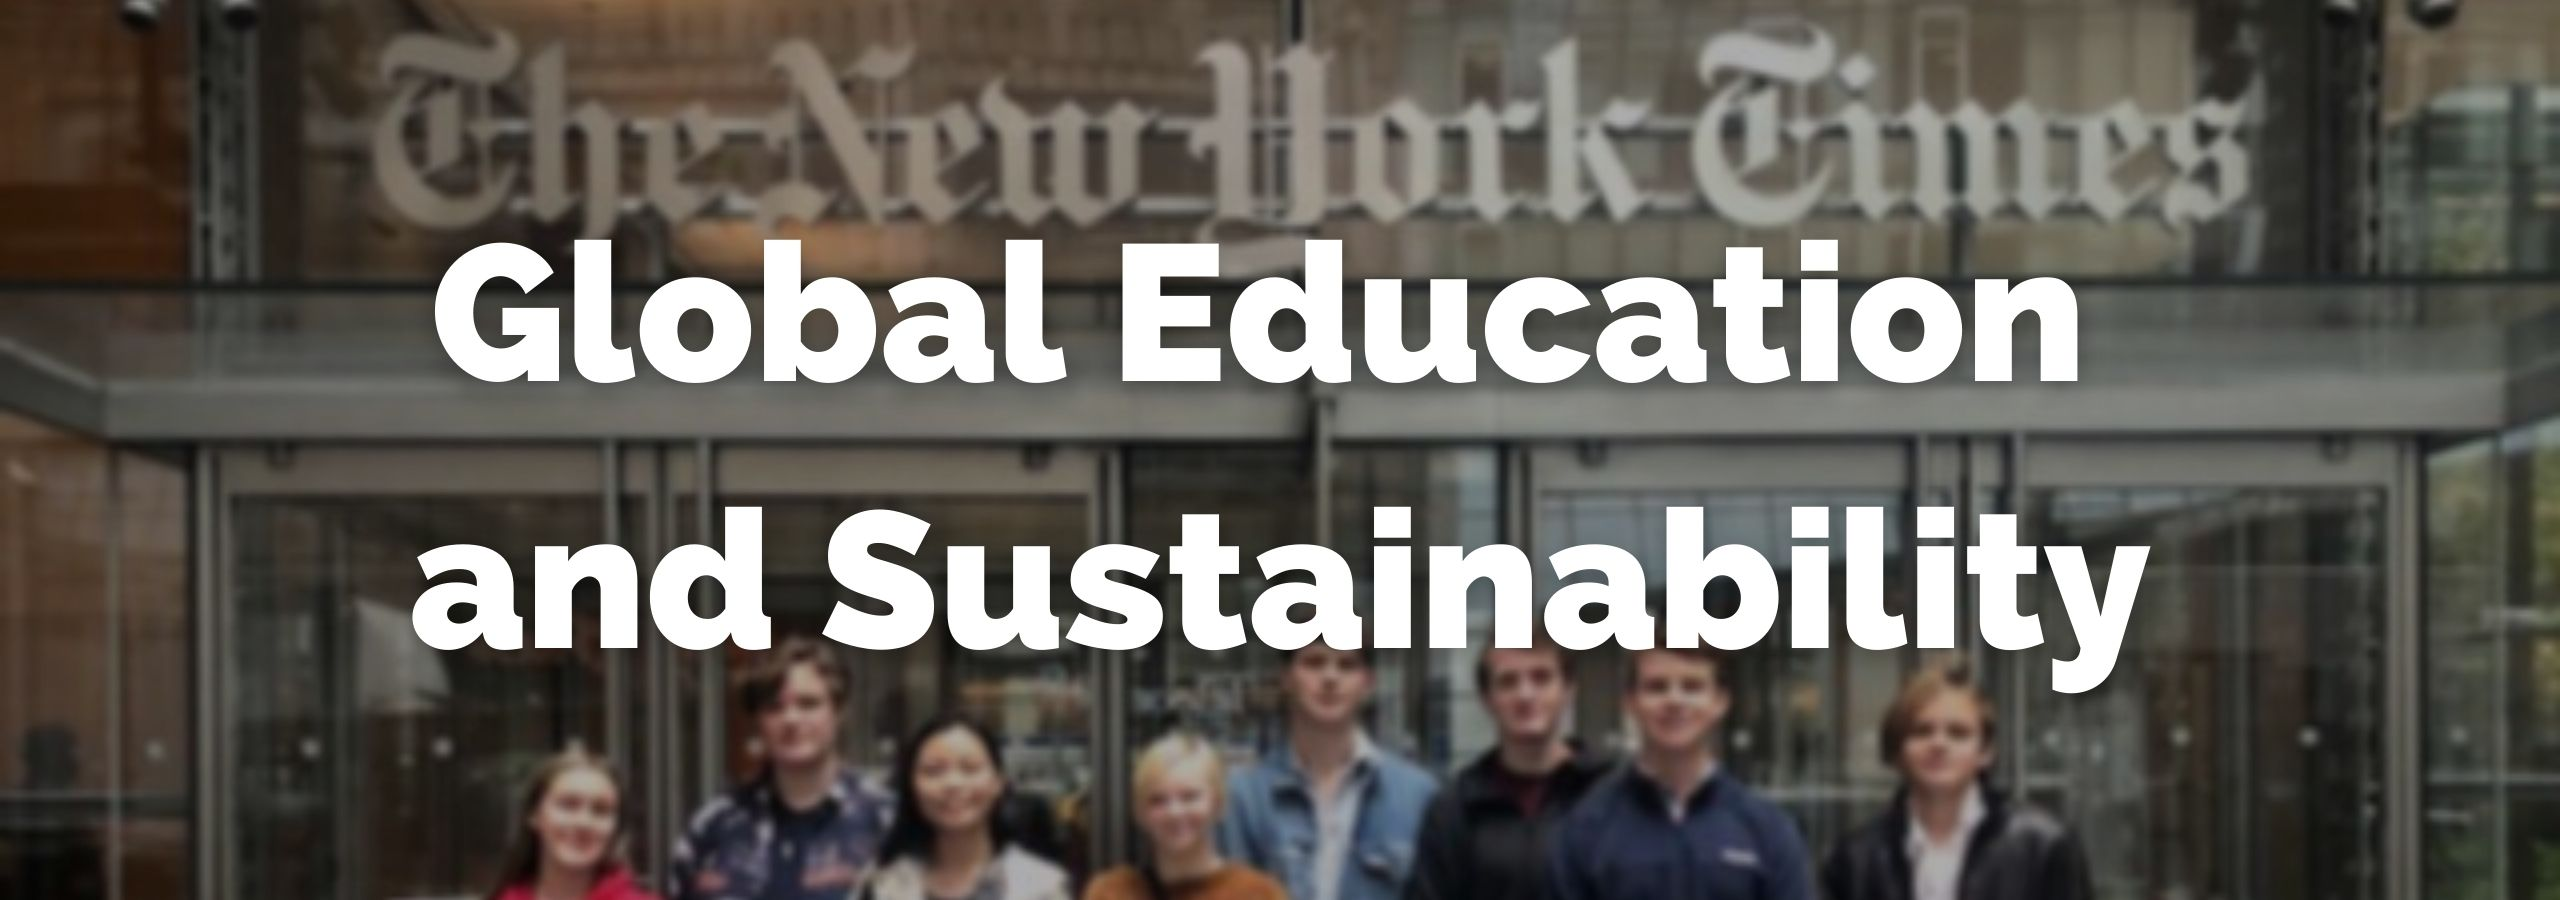 Global Education and Sustainability